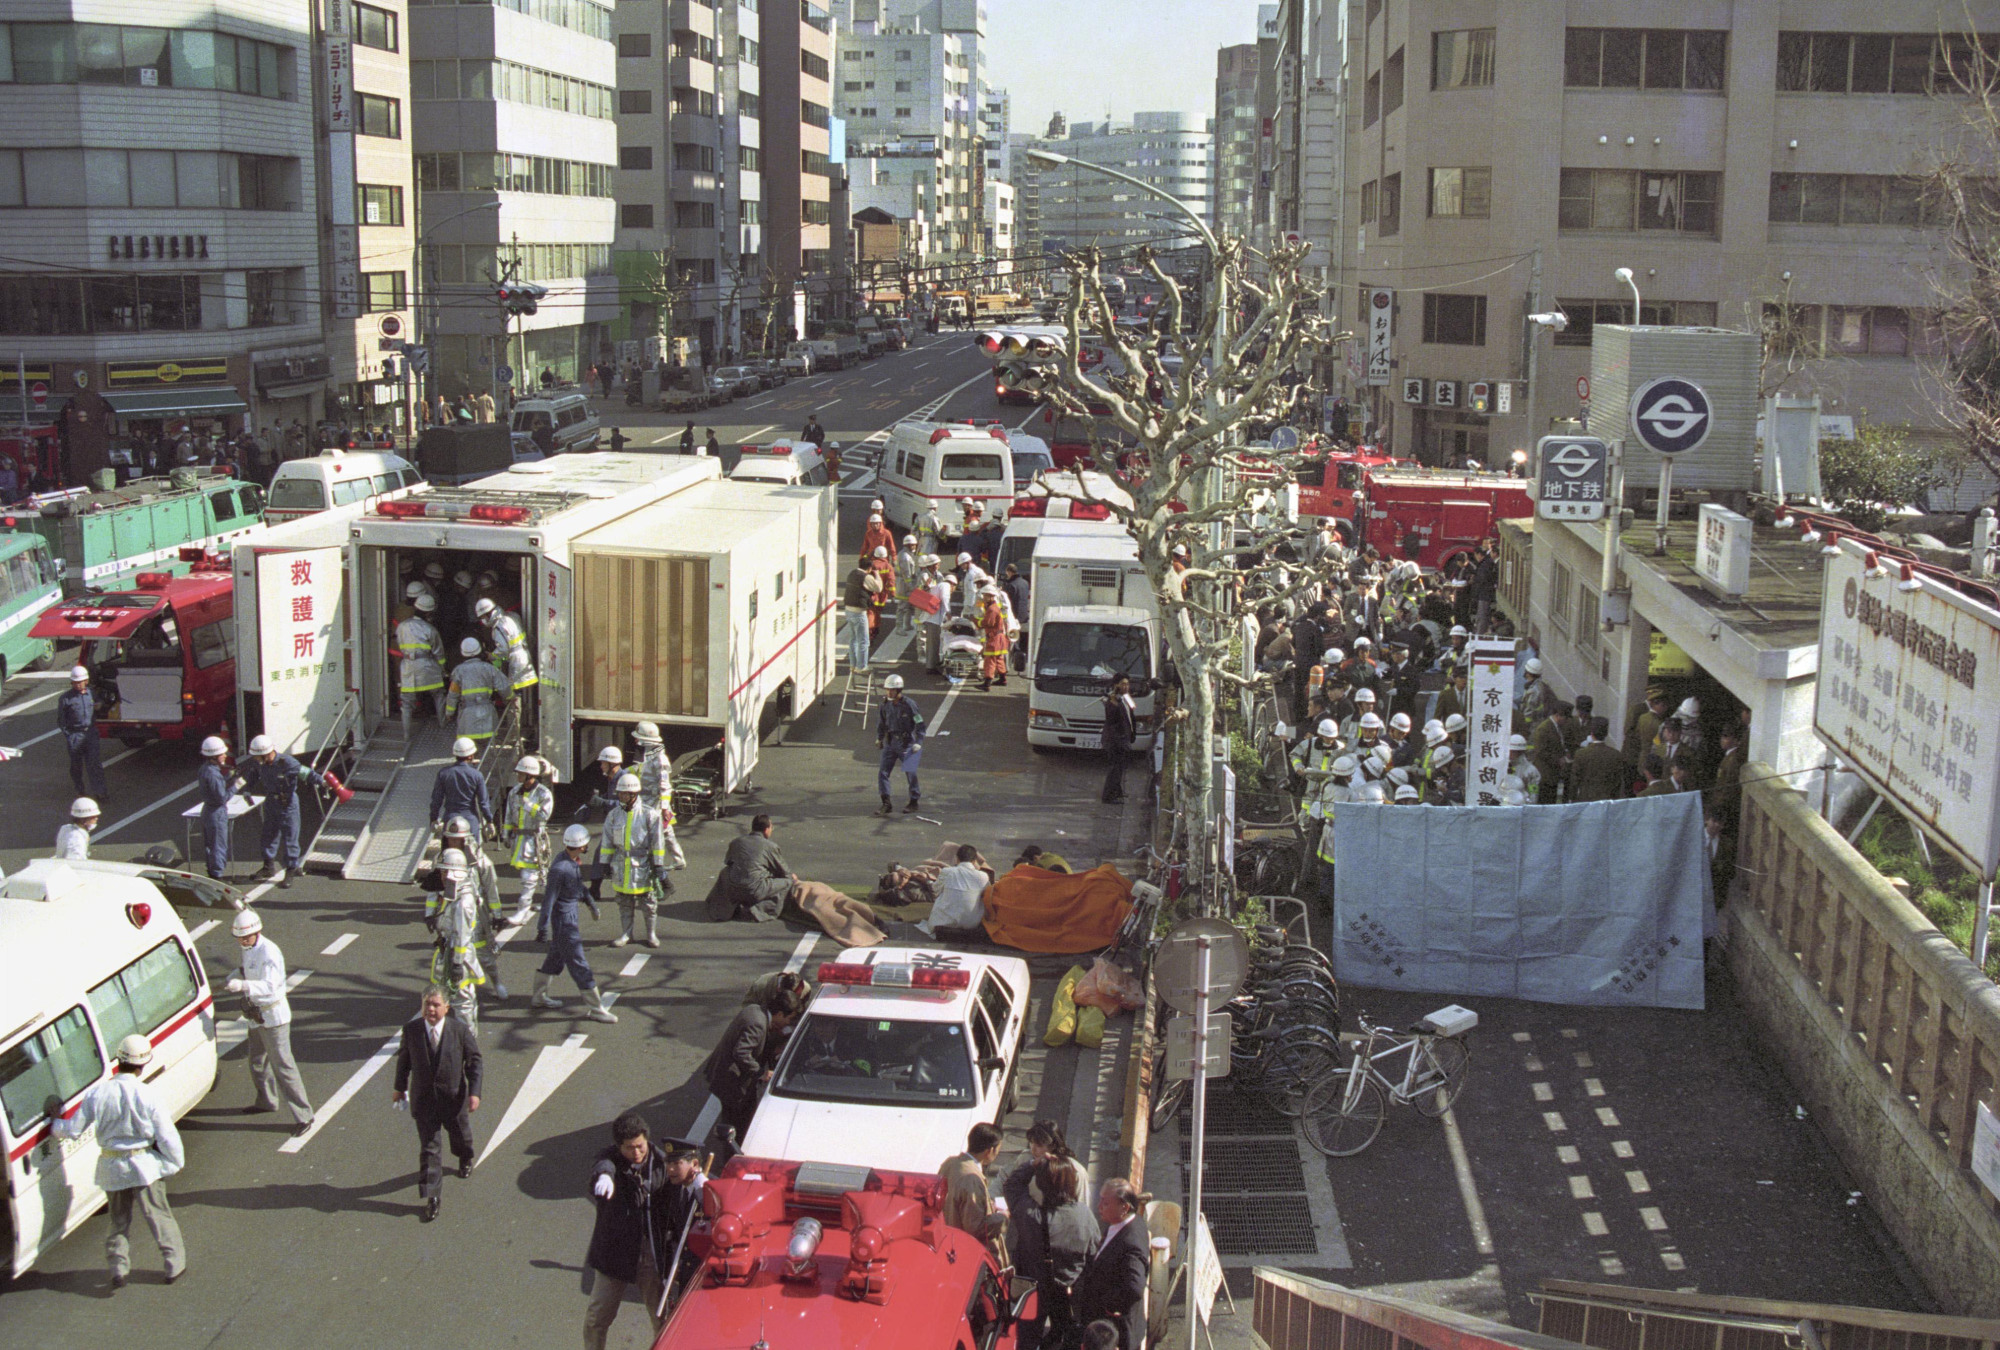 Victims are treated in front of Tsukiji Station in Tokyo after the sarin gas attack by Aum Shinrikyo on the Tokyo subway system on March 20, 1995. The attack killed 13 people and injured more than 6,200. | KYODO